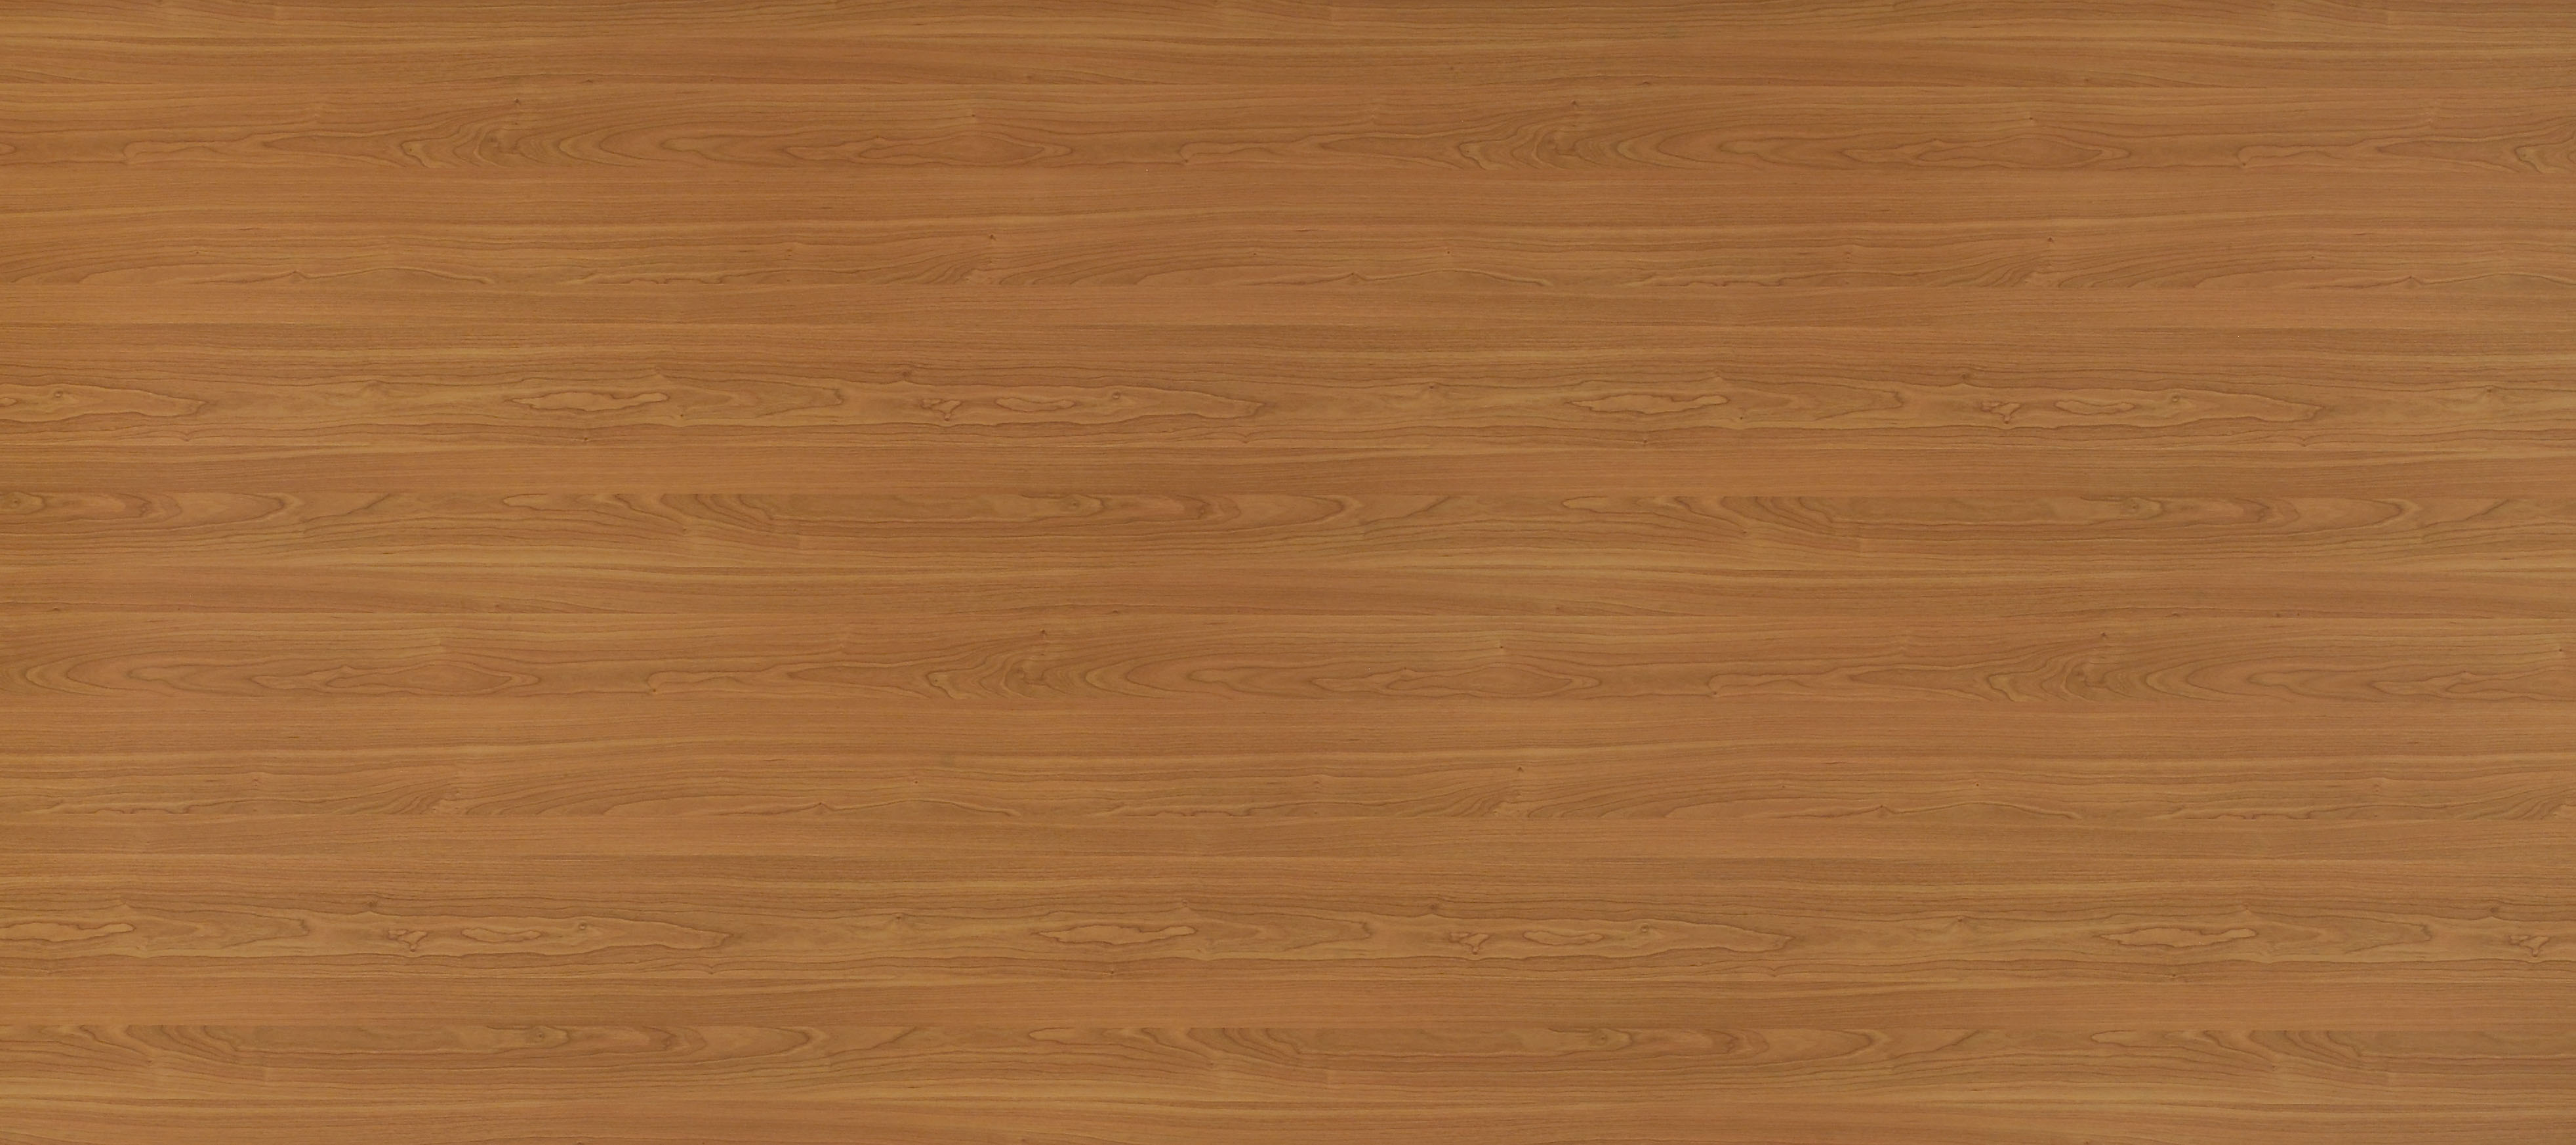 Texture Wood Free Download Photo Download Wood